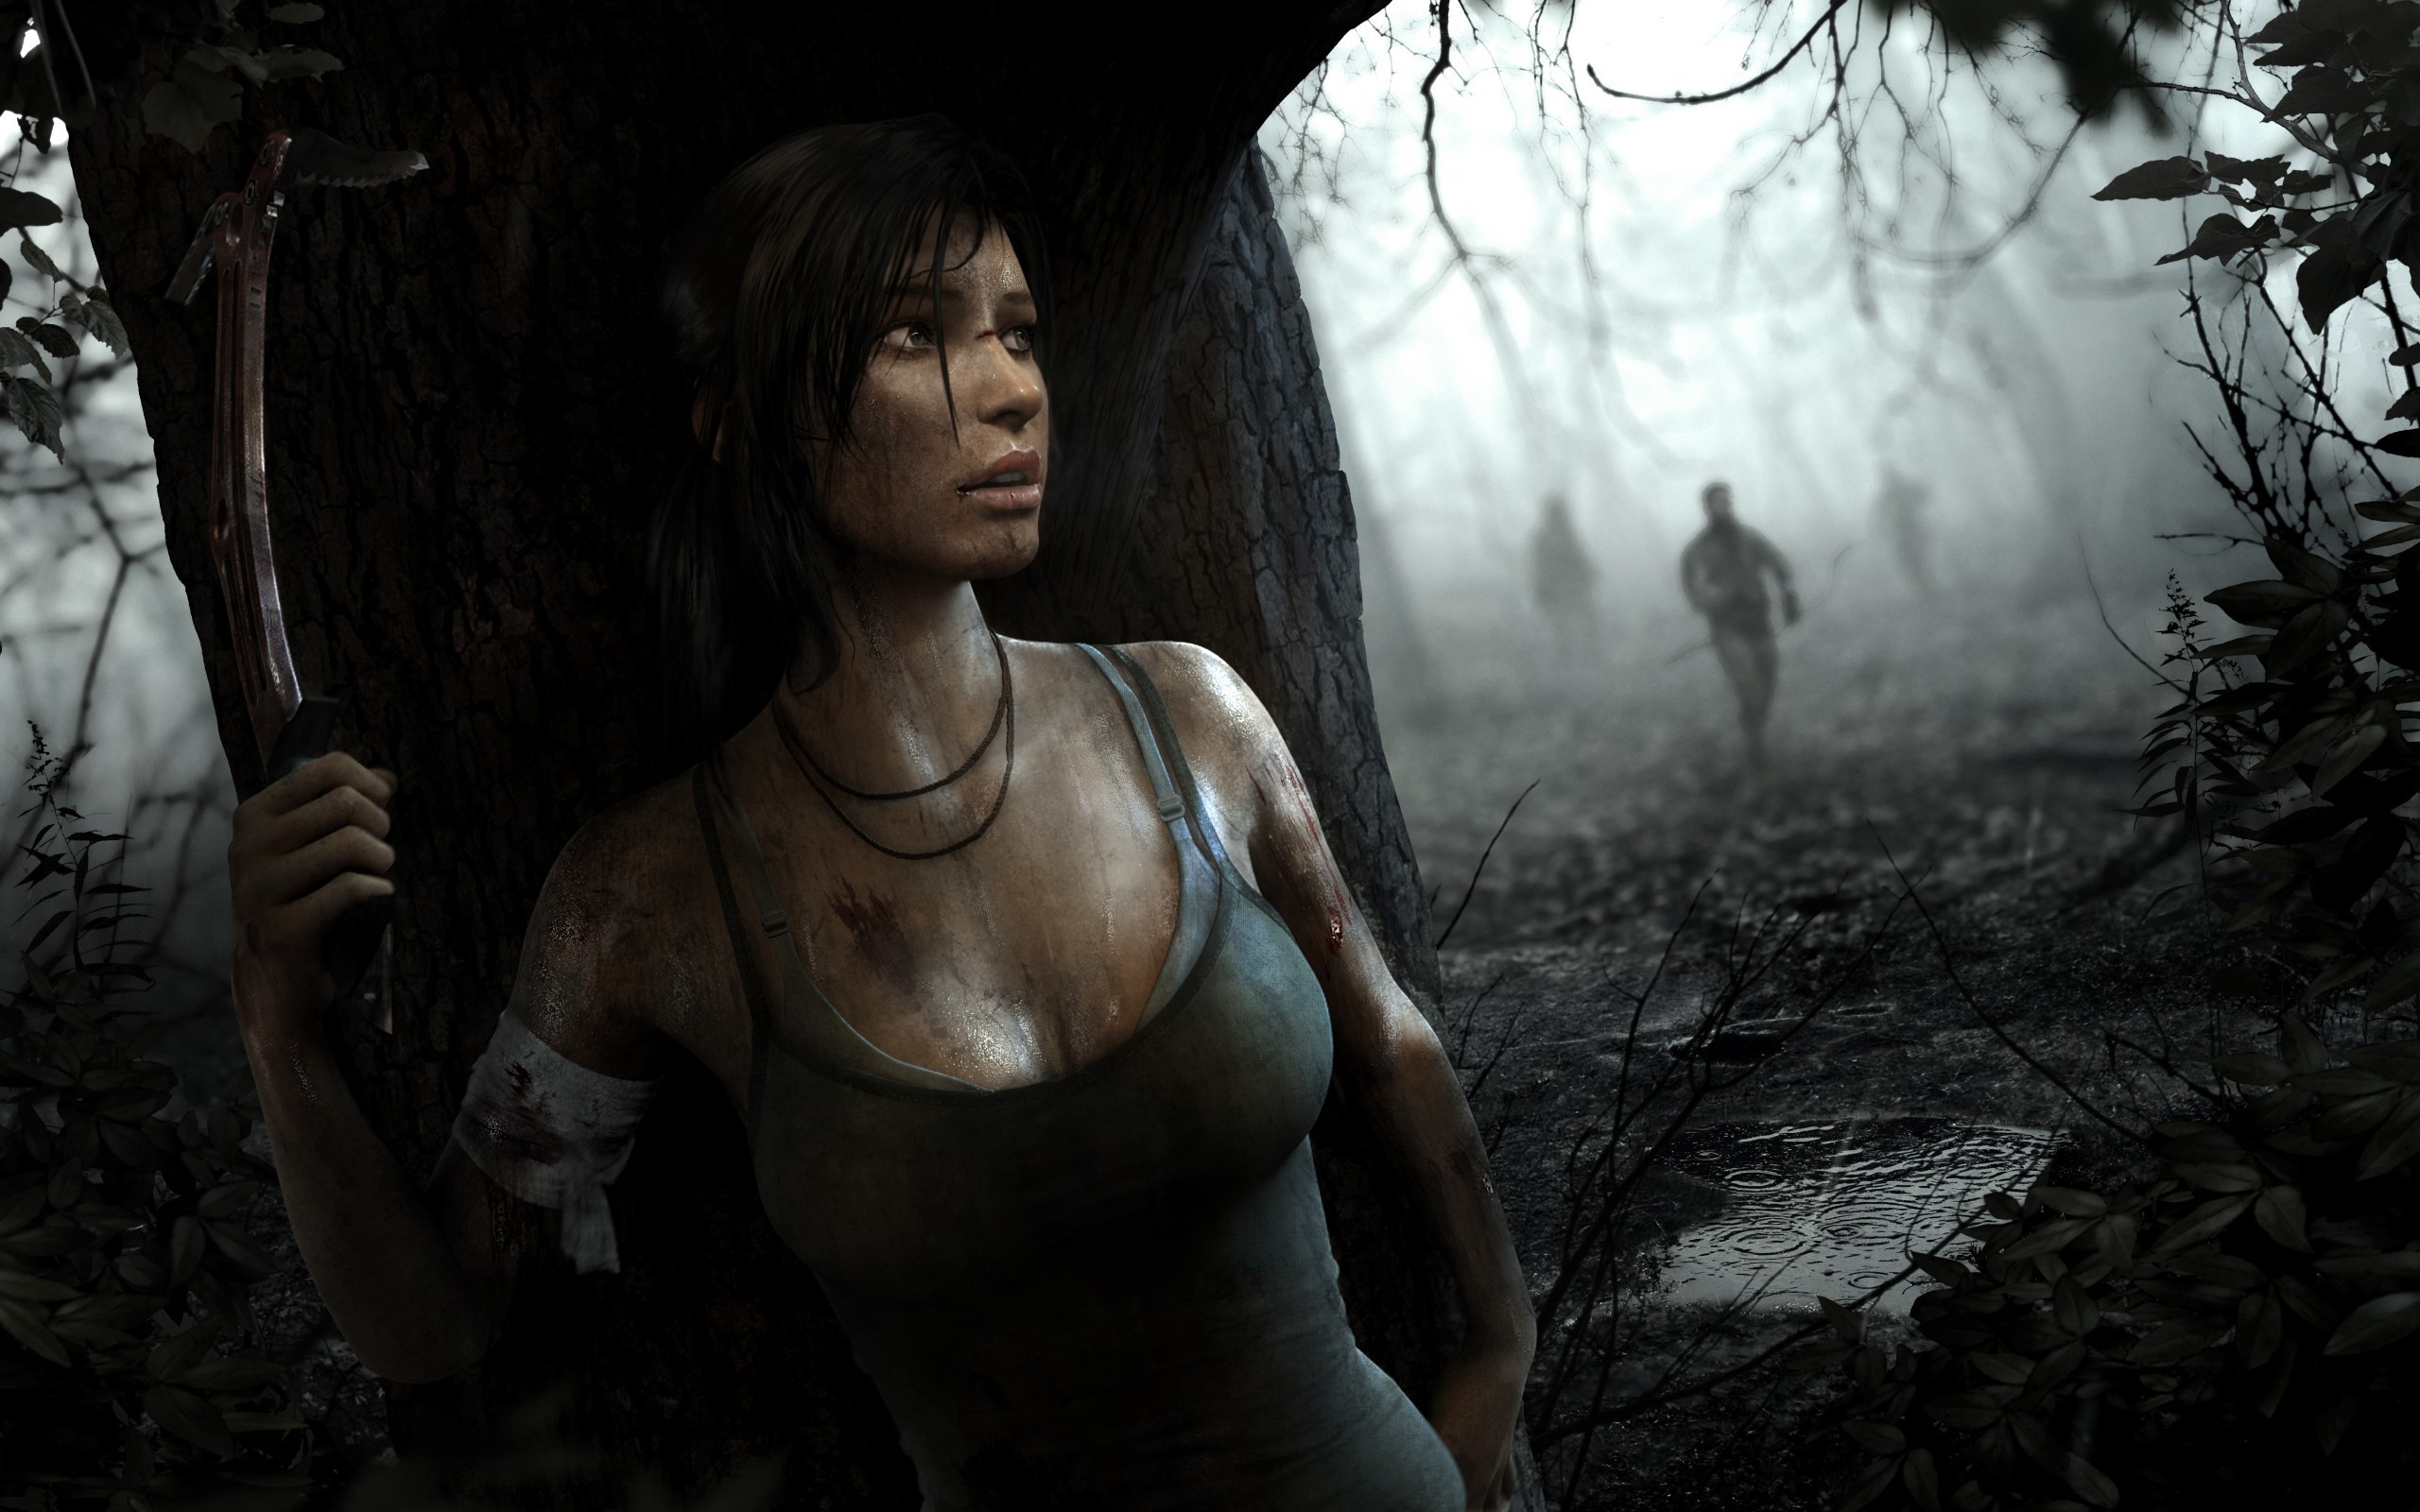 2560x1600 Rise of the Tomb Raider full version activated PC wnload Free | Wallpapers  4k | Pinterest | Tomb raiders and Wallpaper